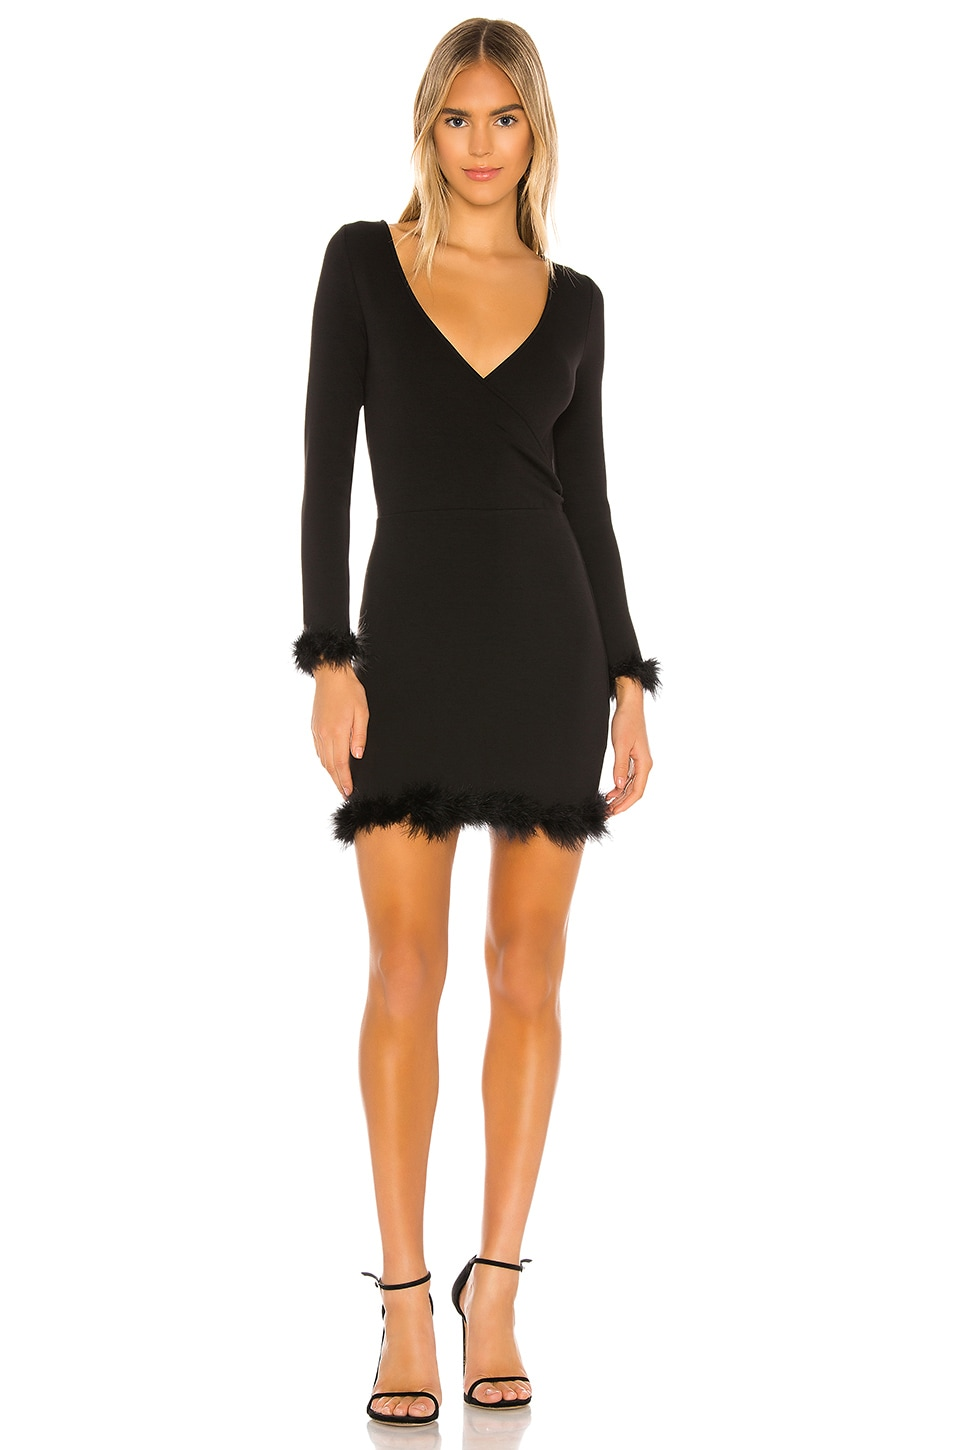 Lovers + Friends Bristol Mini Dress in Black